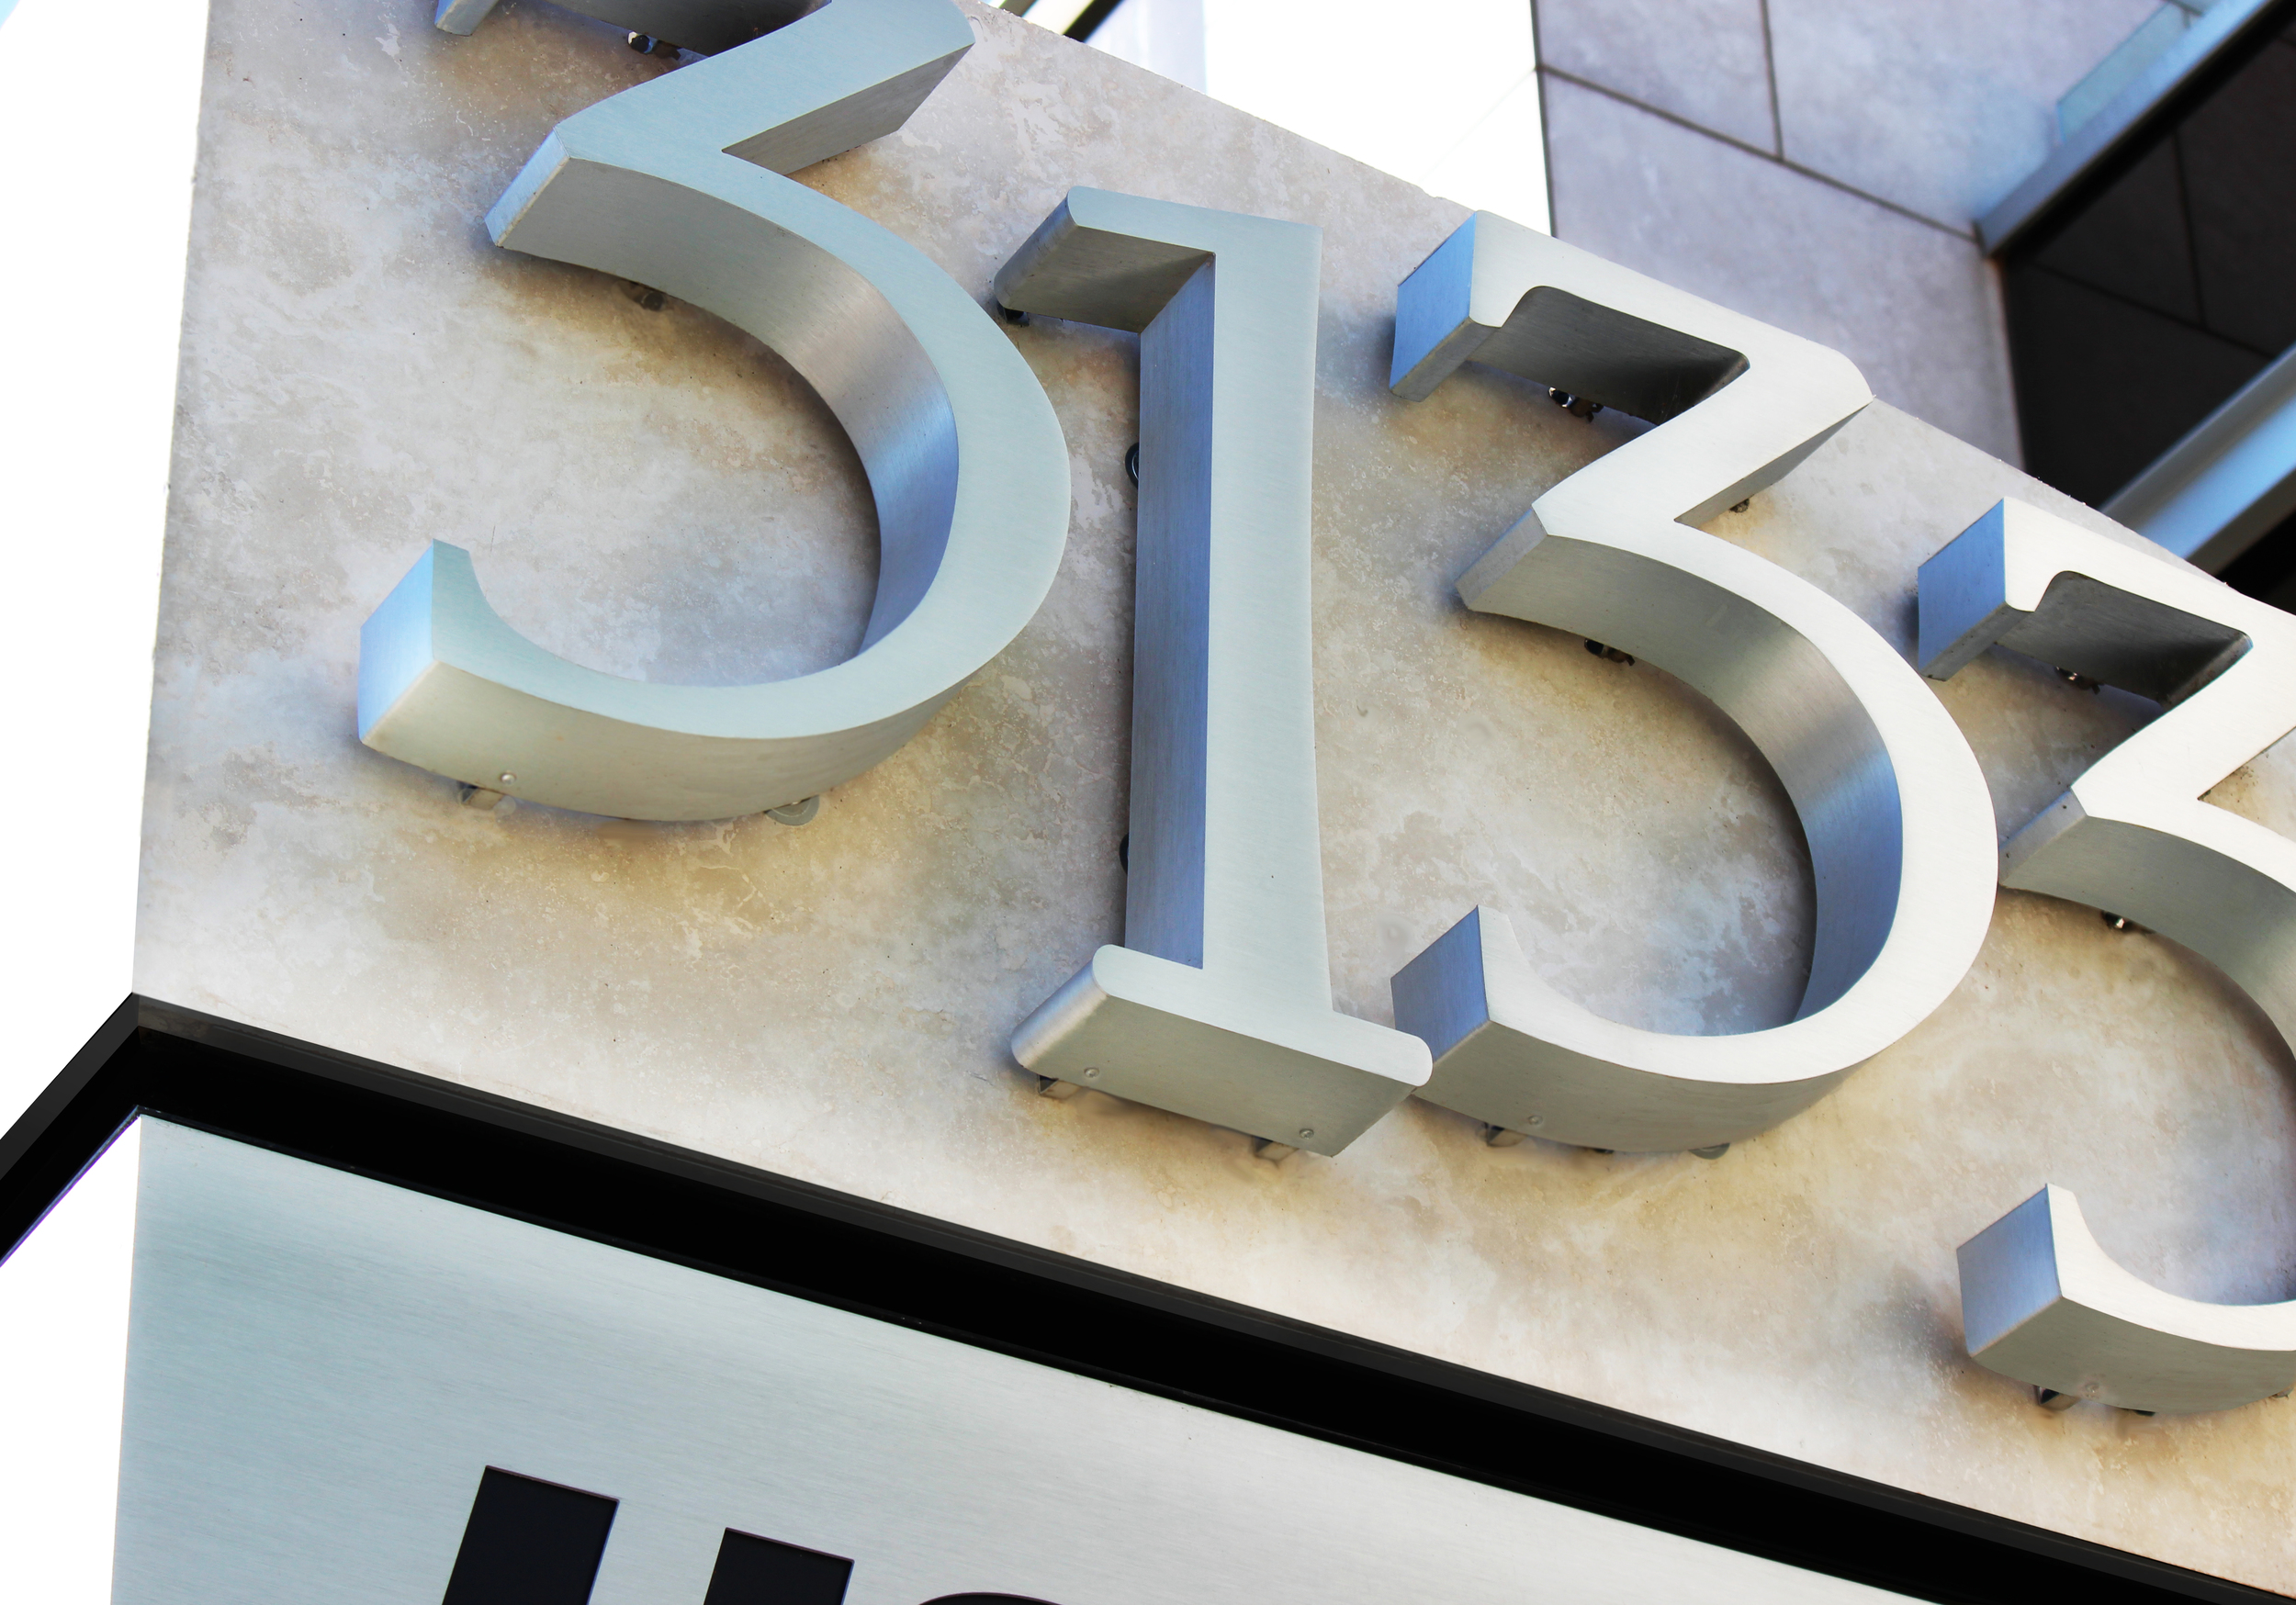 The halo-lit address is fabricated using stainless steel and LEDs. The numbers are mounted to travertine slab.